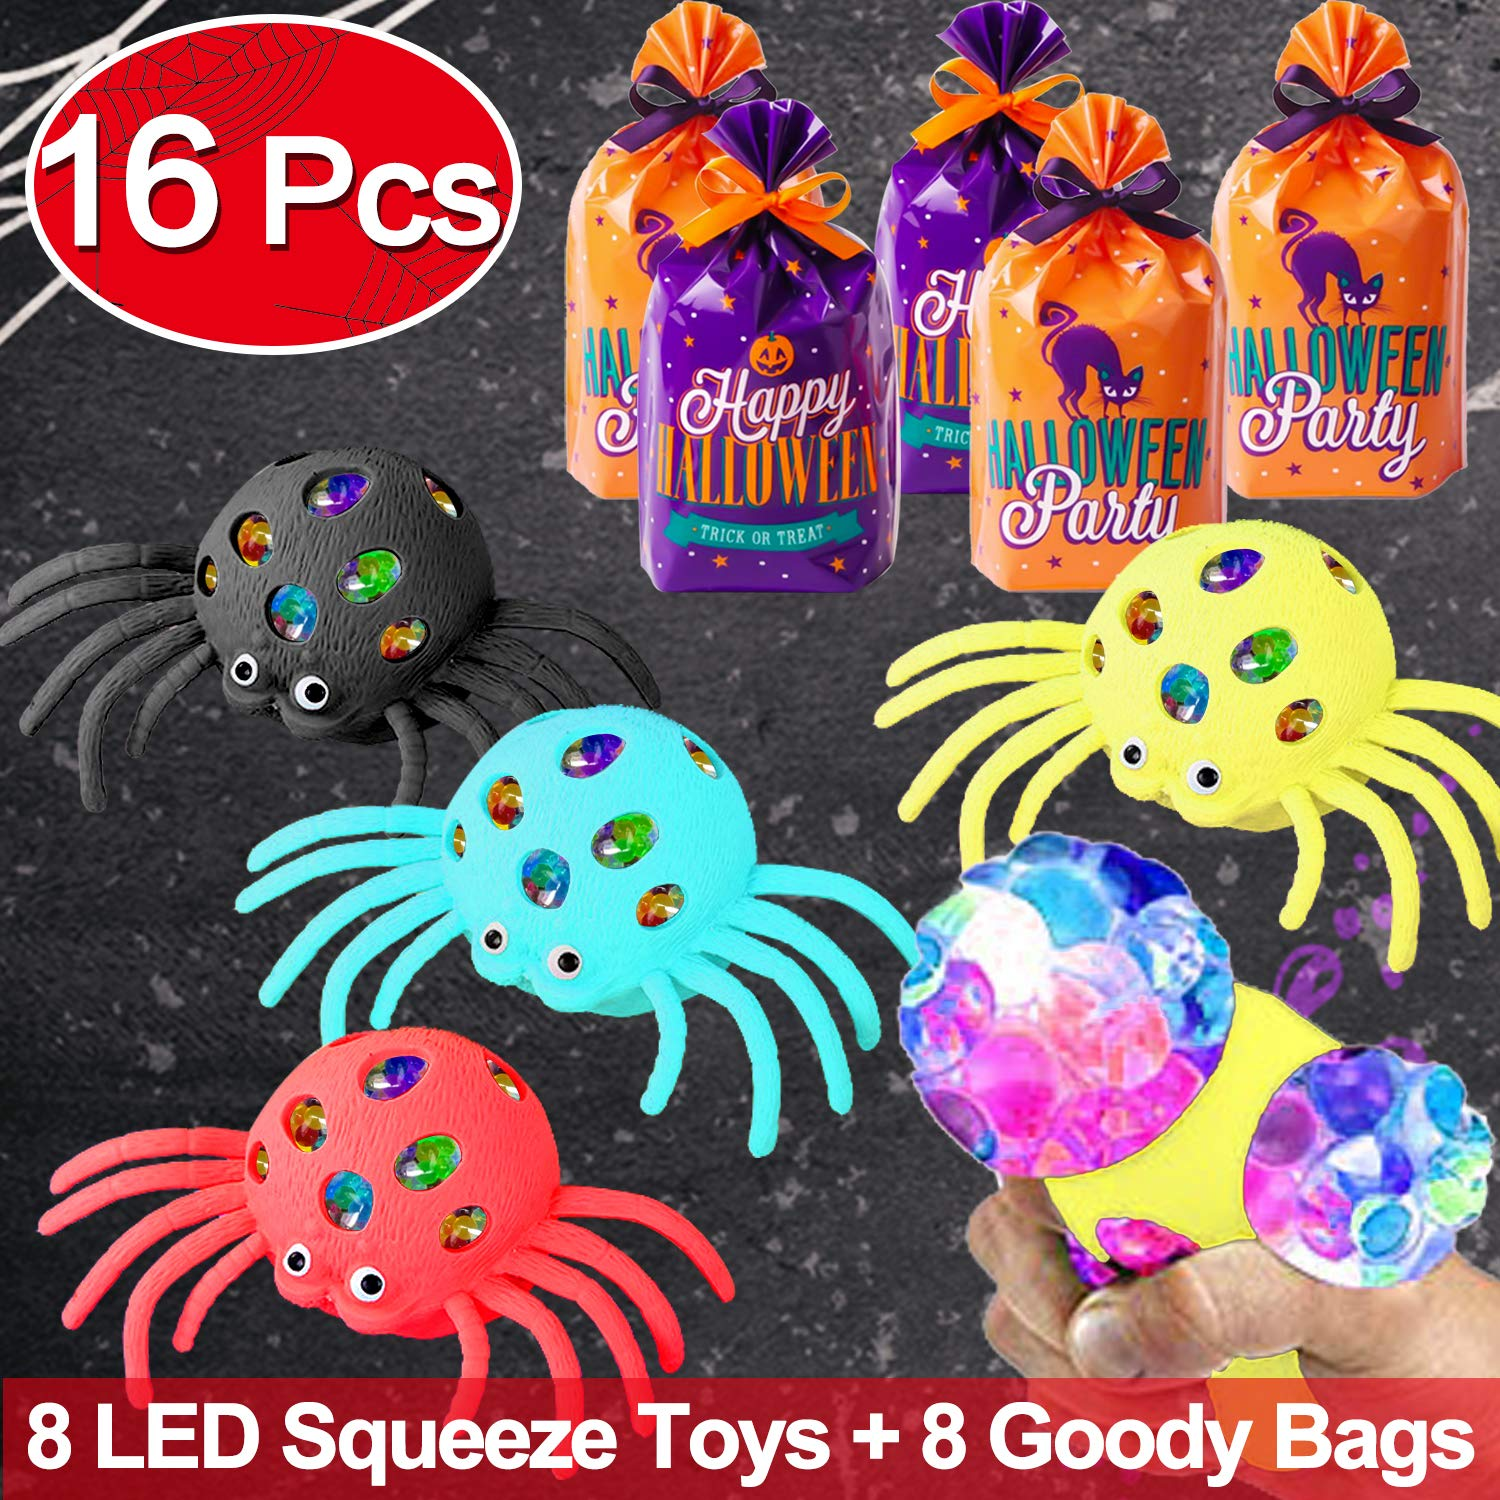 GBD Light Up Spider Mesh Squeeze Novelty Toys,Halloween Party Game Toys for Kids,8 Pack Led Stress Relief Ball Toy Scary Black Spiders Glow in The Dark Party Favors Halloween Trick or Treat Goody Bags by GBD